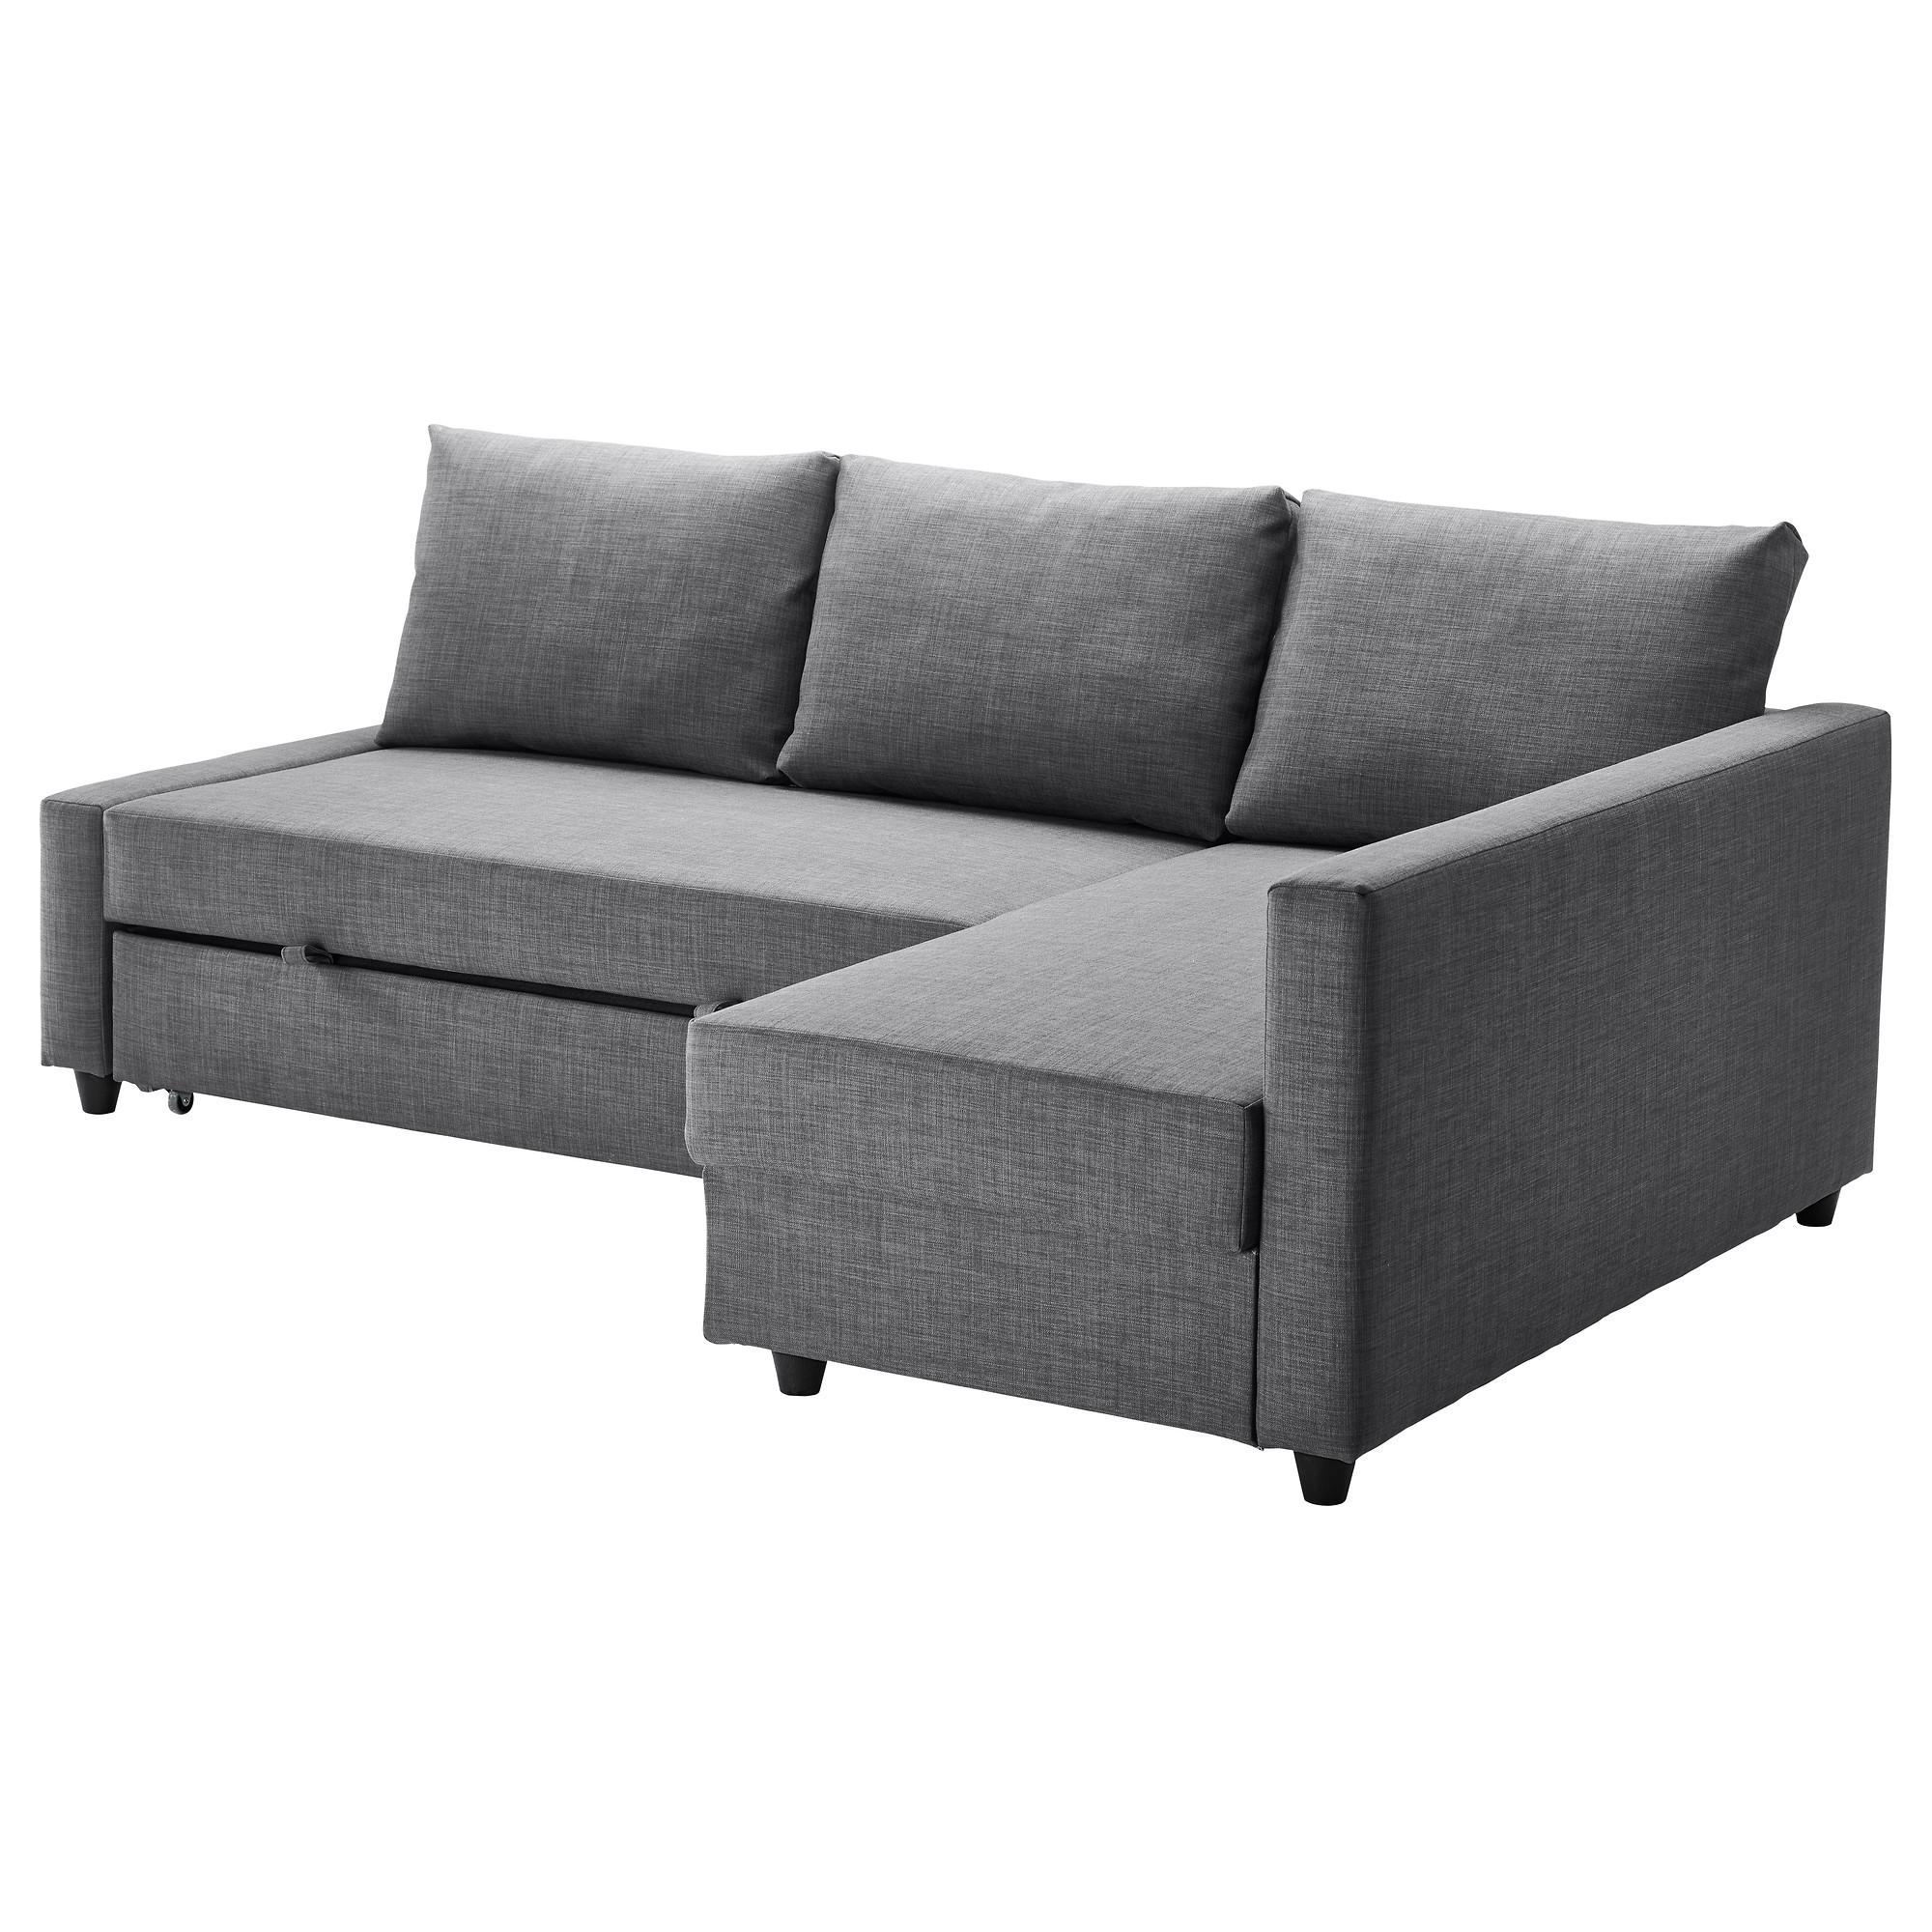 Friheten Sleeper Sectional 3 Seat W Storage Skiftebo